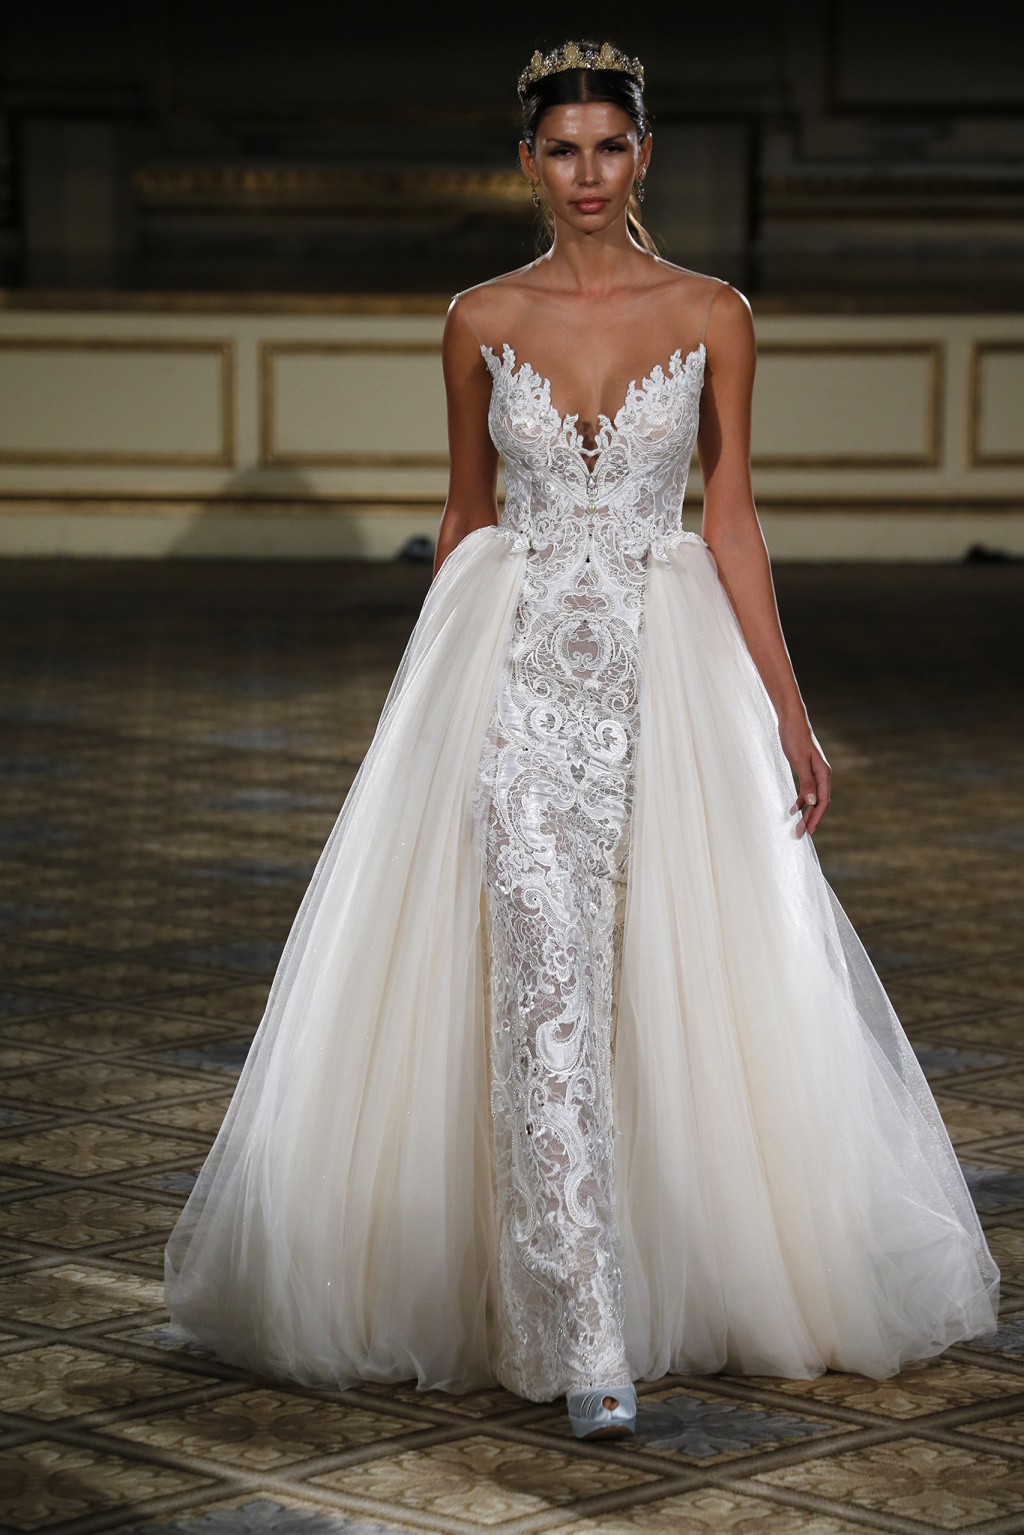 Top Aristocratica e sensuale la sposa Berta Spring 2016 – The Dress LE93